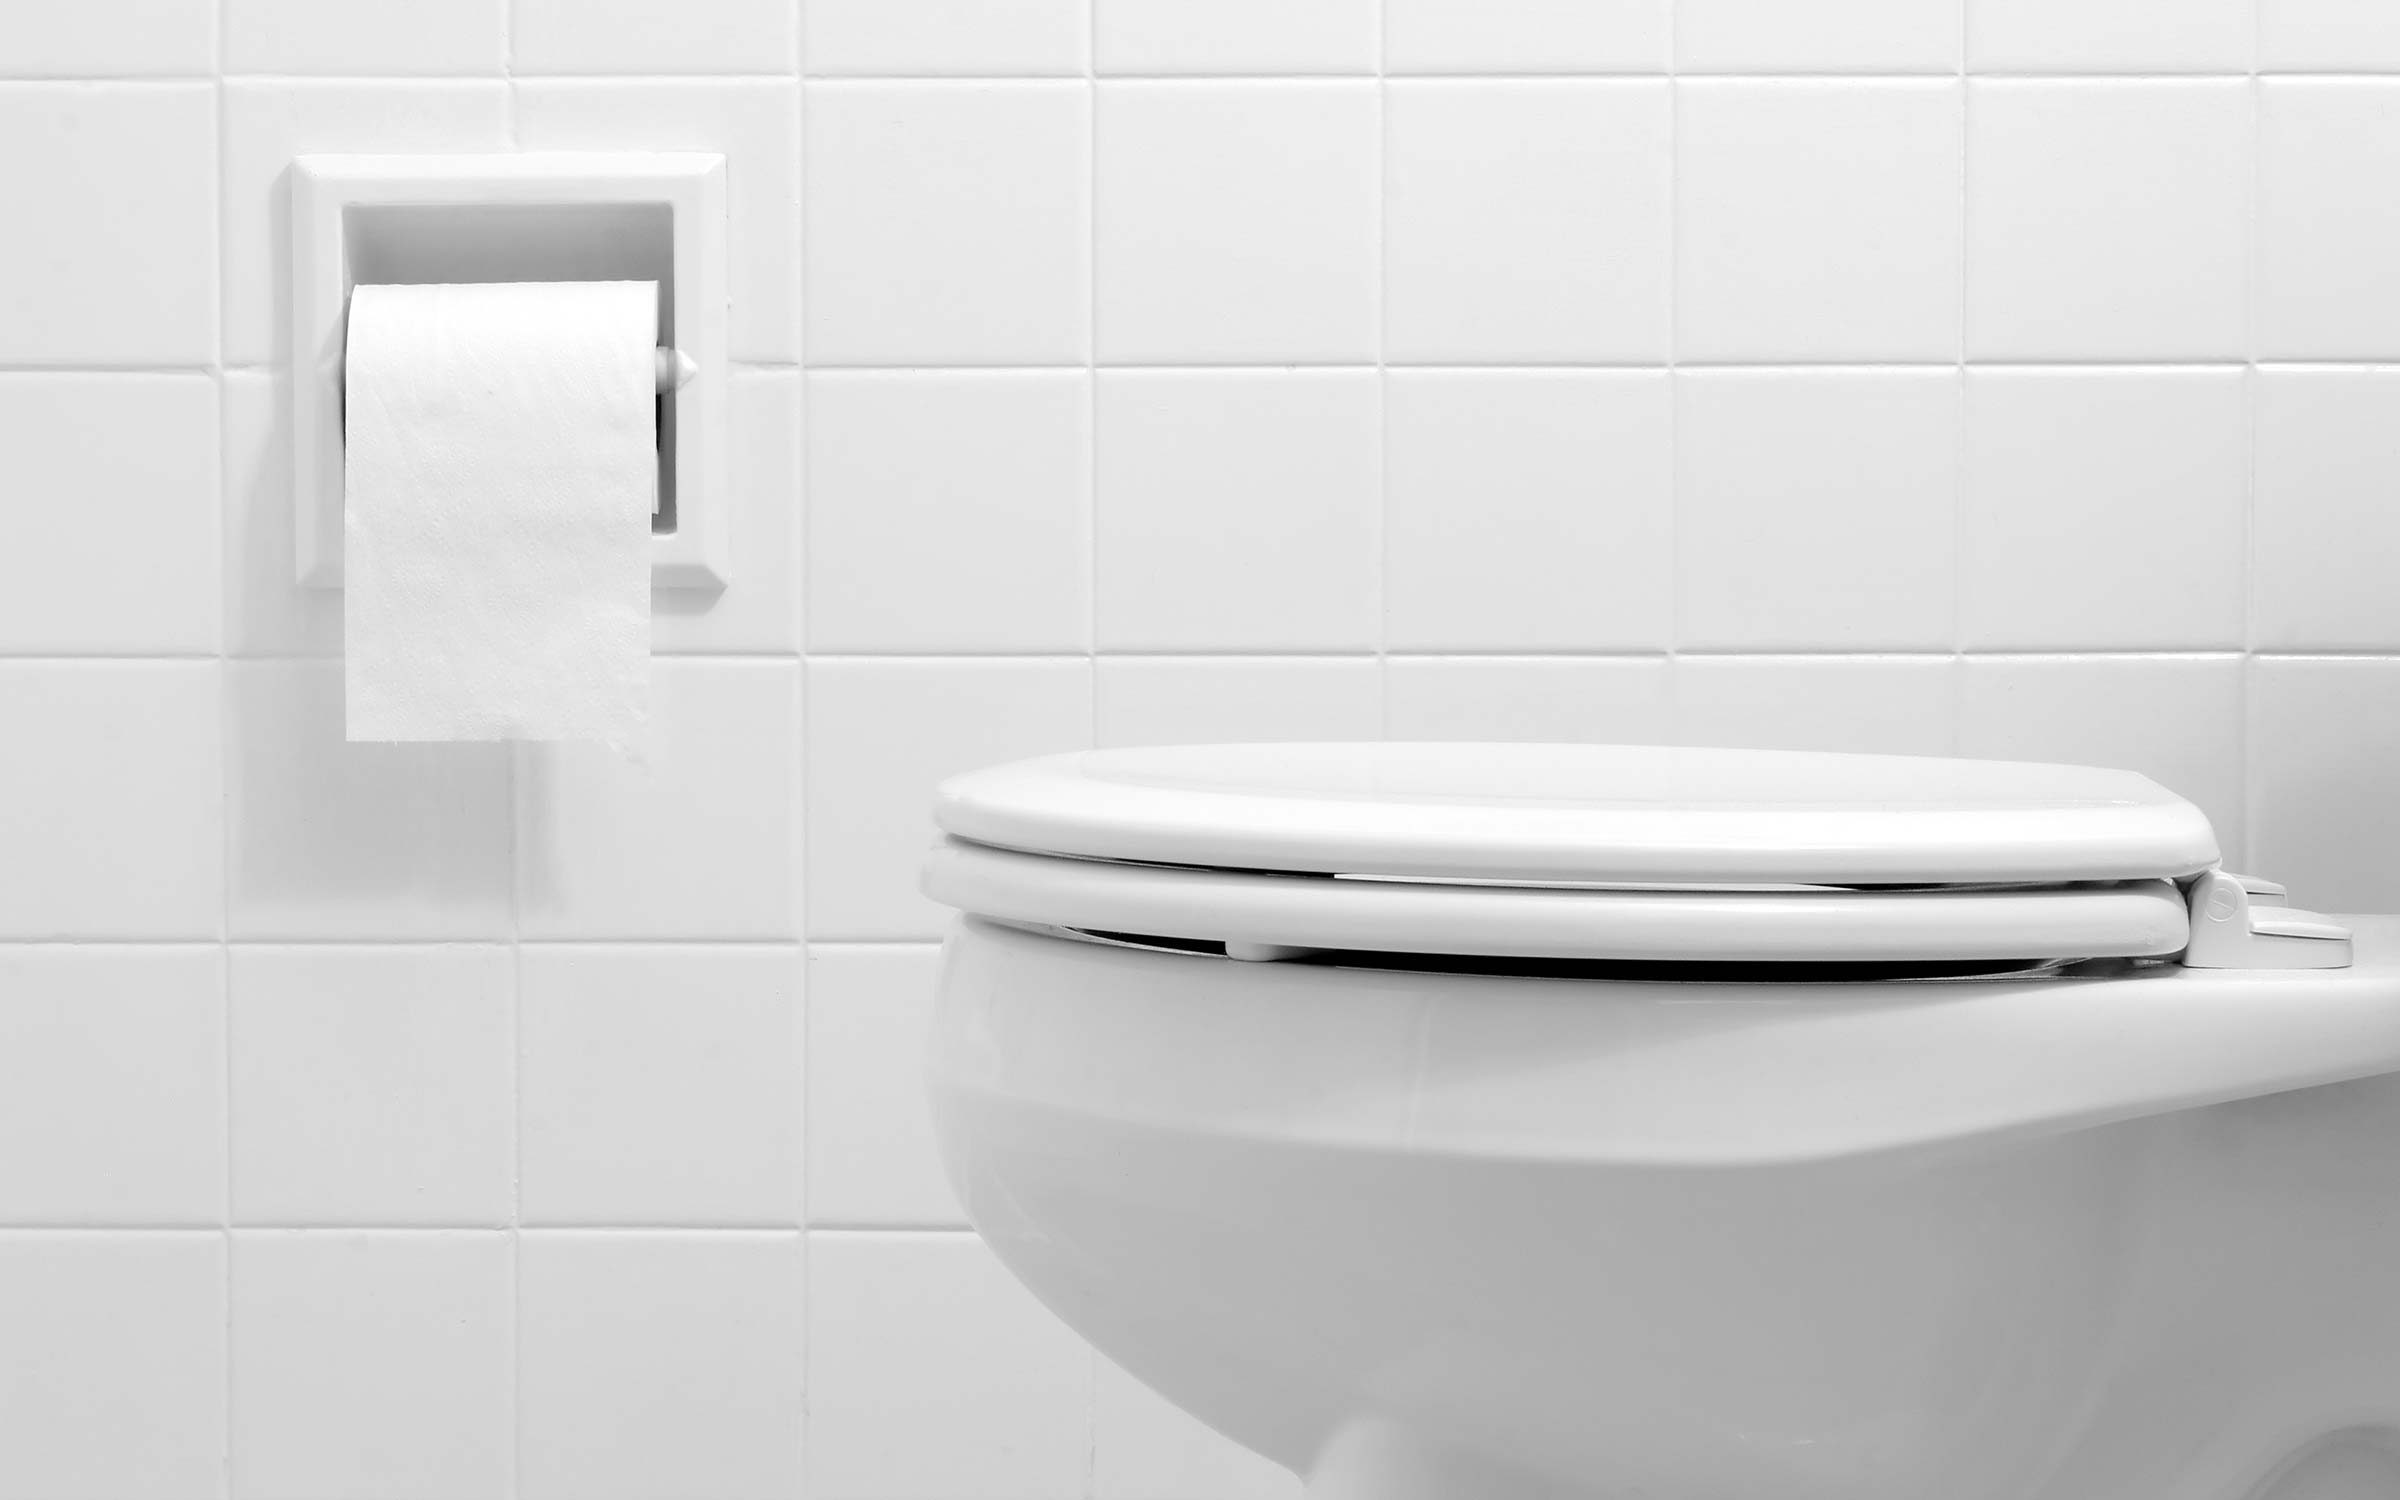 Magnificent Symptoms Of A Urinary Infection Everyone Should Know The Alphanode Cool Chair Designs And Ideas Alphanodeonline